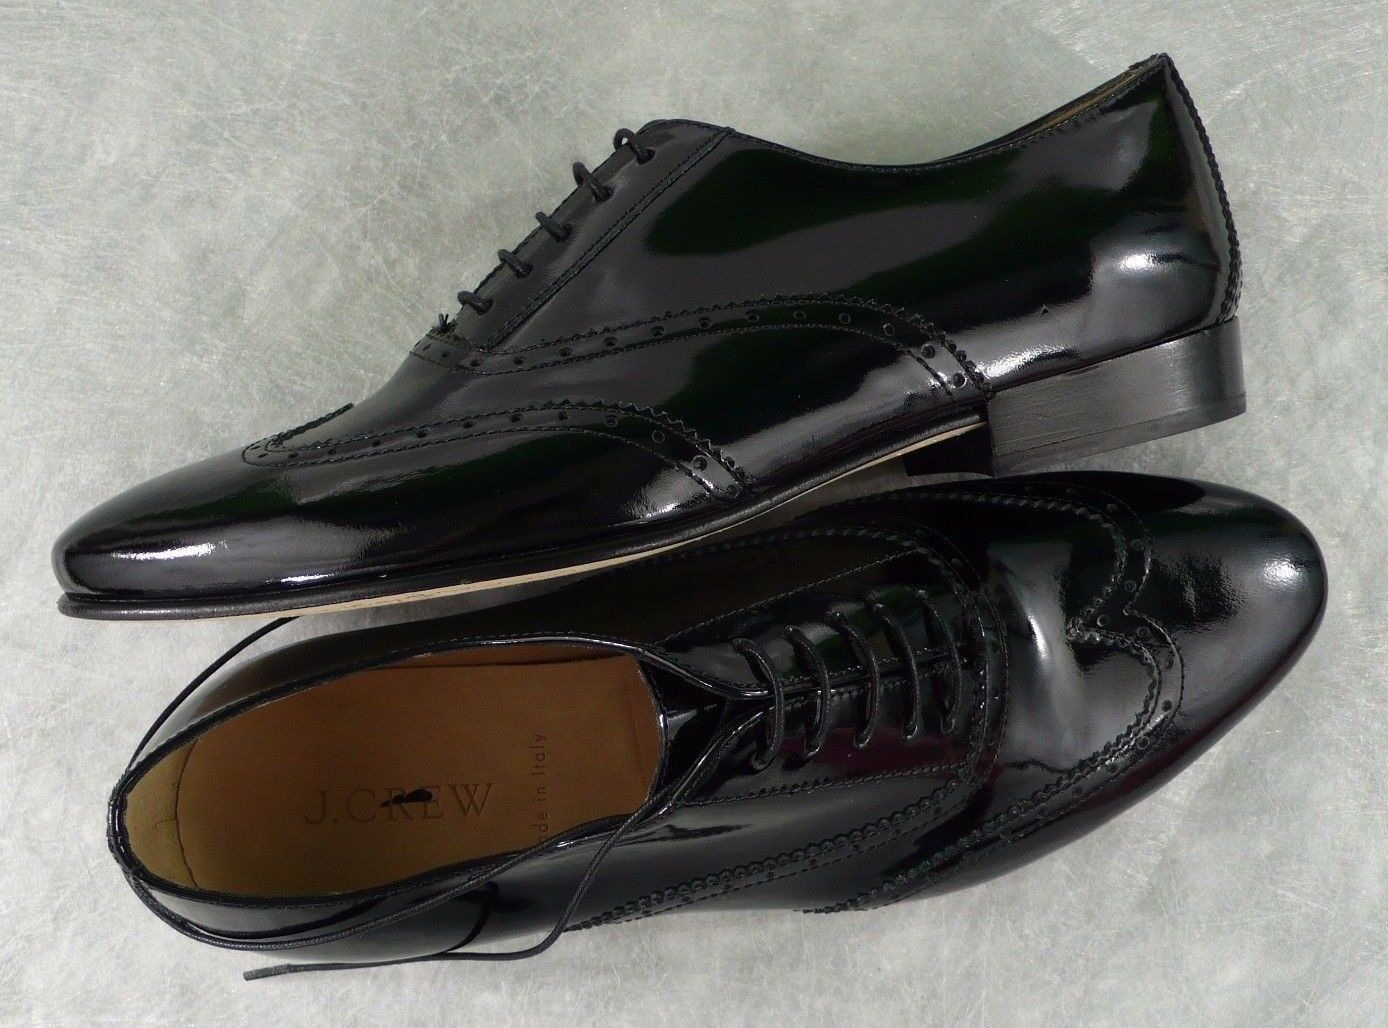 NEW J. J. J. CREW Retail  268 PATENT LEATHER WING TIP OXFORDS BLACK SIZE 9.5 ITALY 514f35